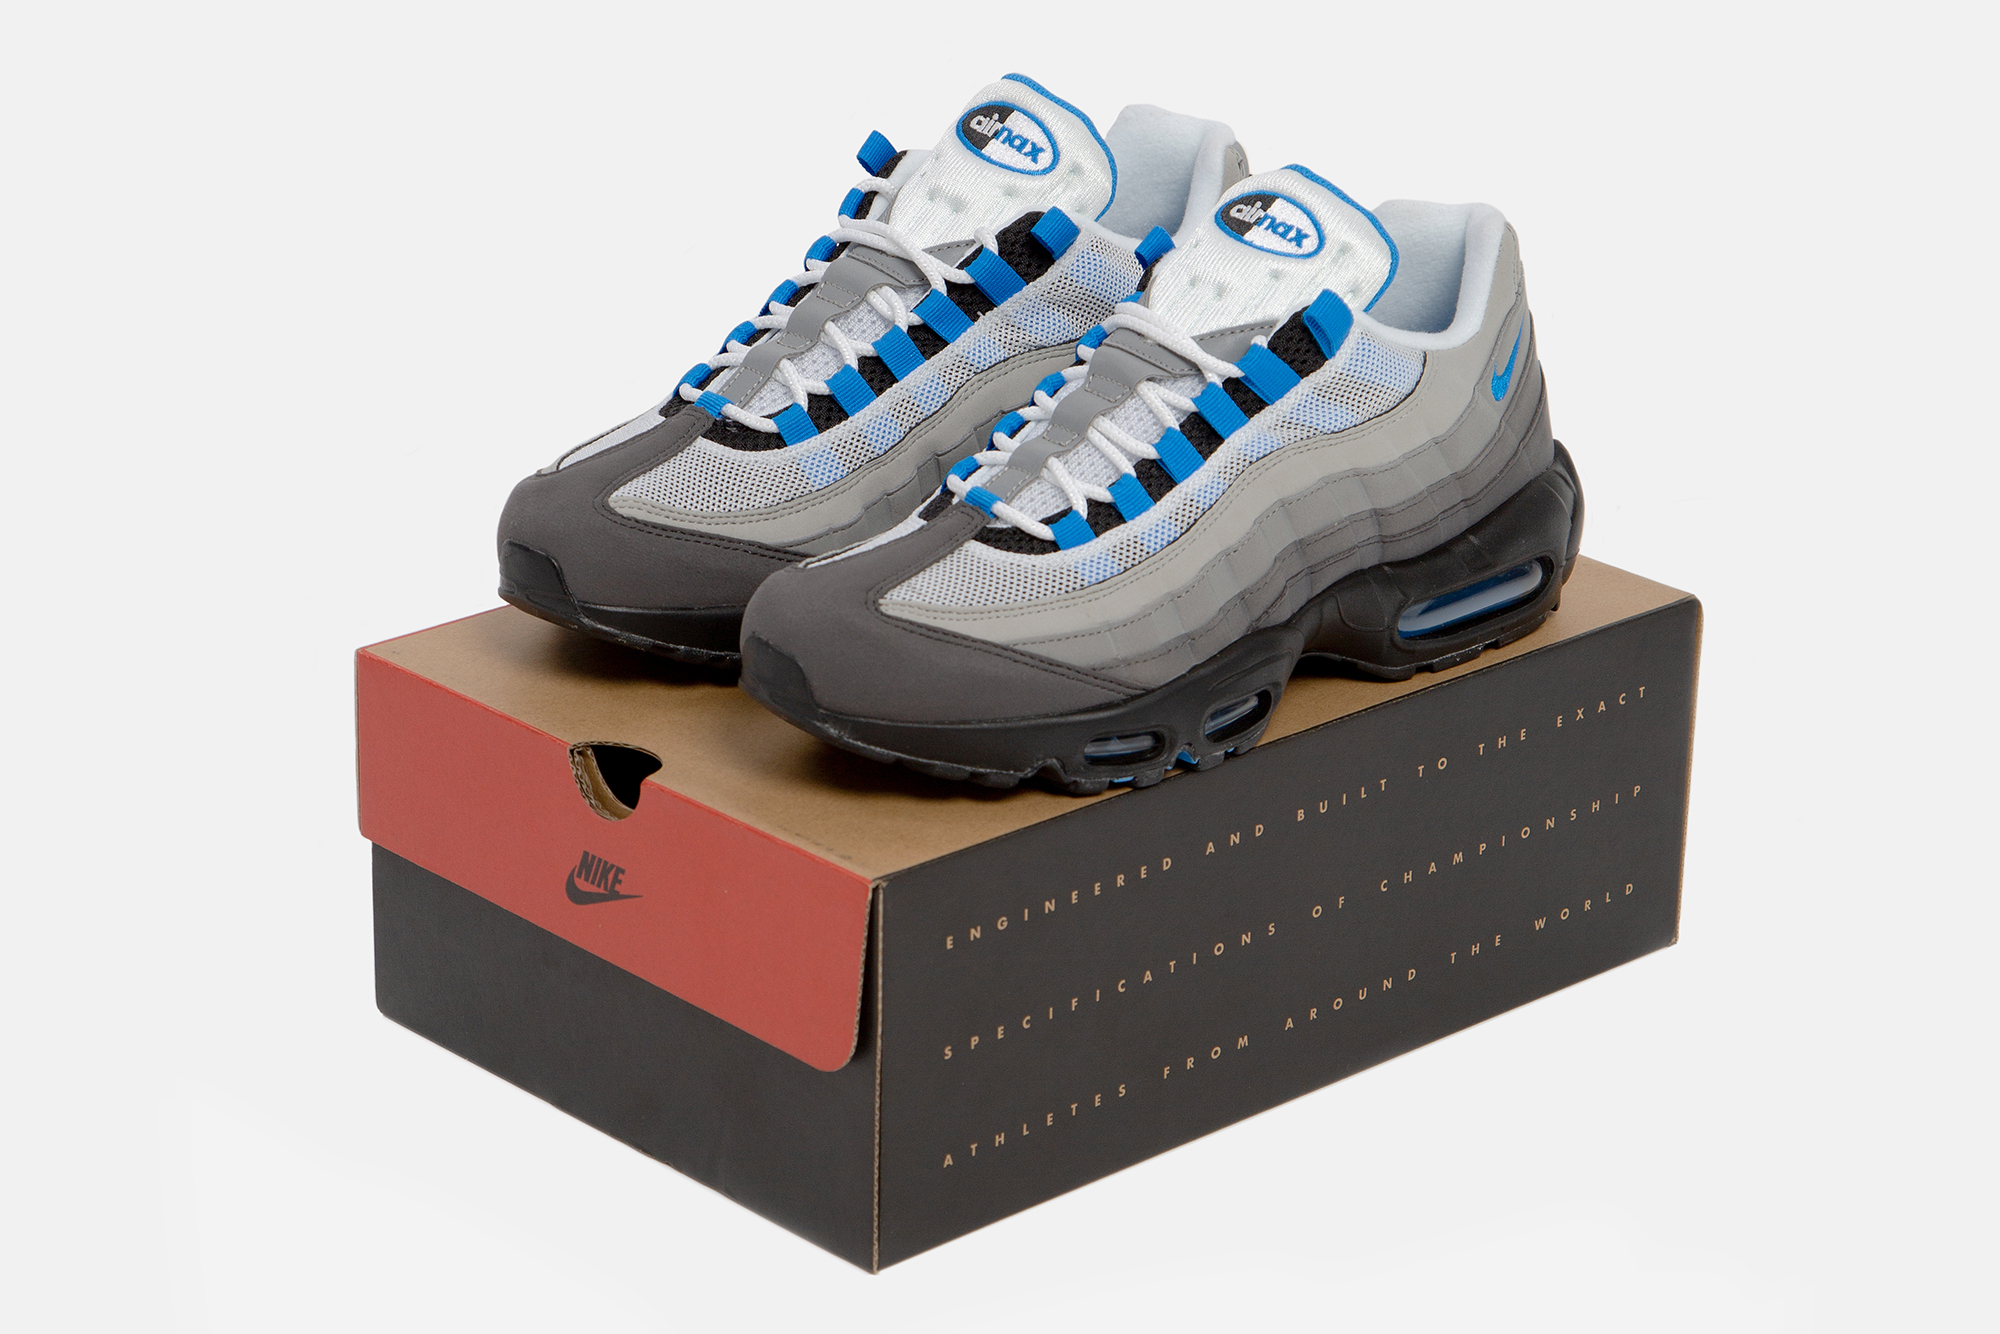 72a75a25 Nike Air Max 95 OG 'Crystal Blue' - size? blog